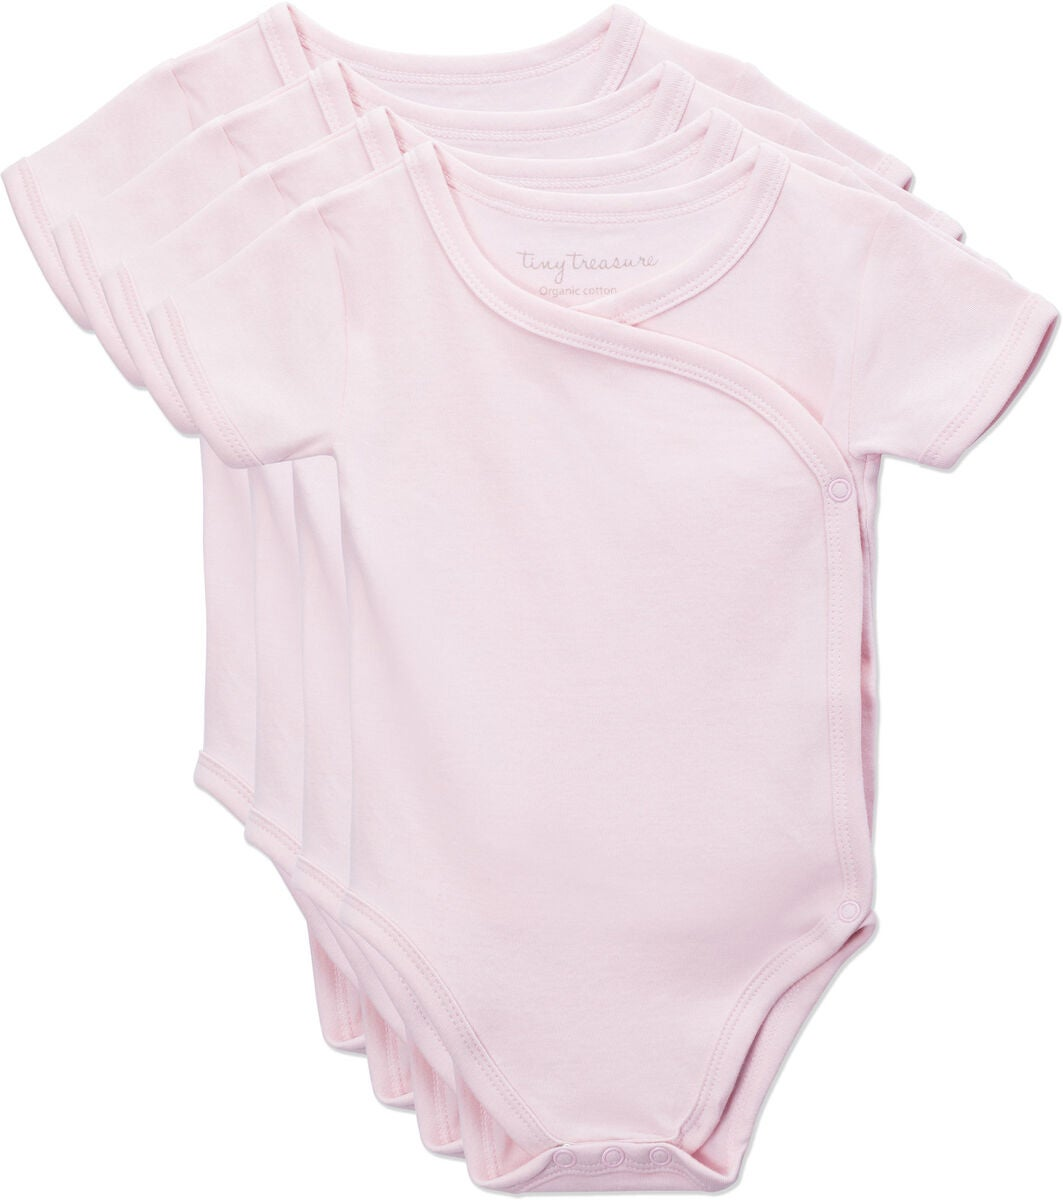 Tiny Treasure Kendall Body 4er-Pack, Pink